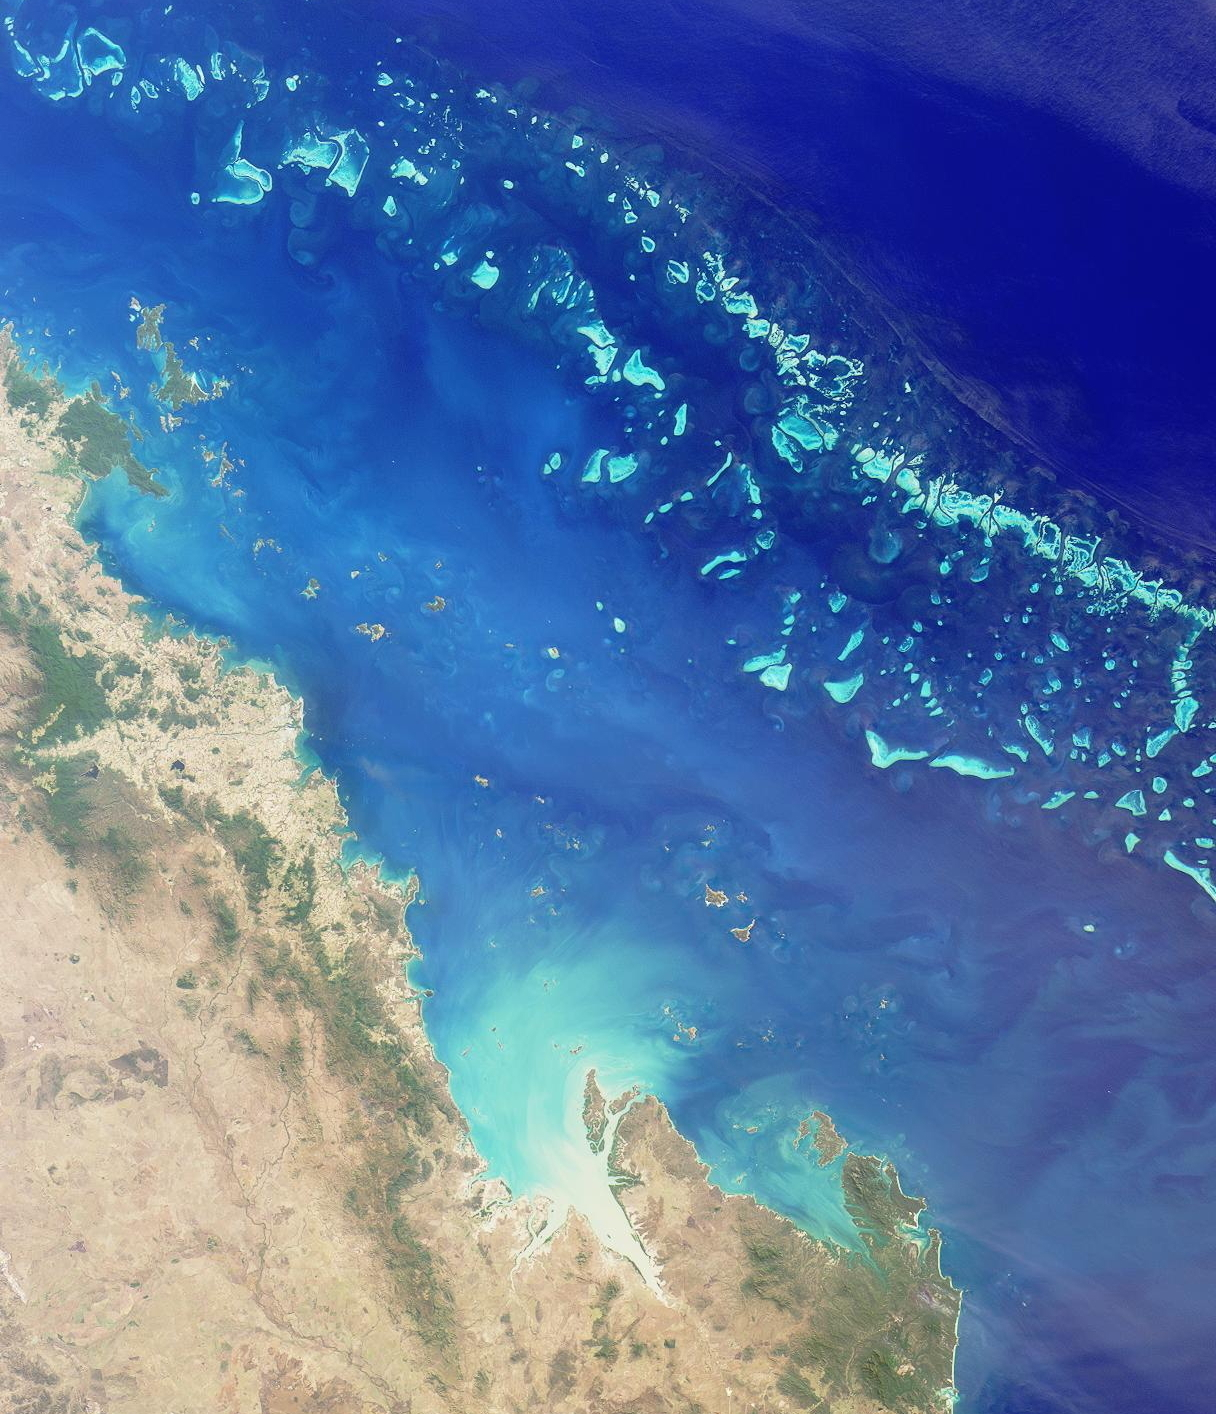 the great barrier reef natural wonder of the world The great barrier reef is one of mother nature's seven natural wonders of the  world and it is listed as a world heritage icon the reef is also home to the  world's.